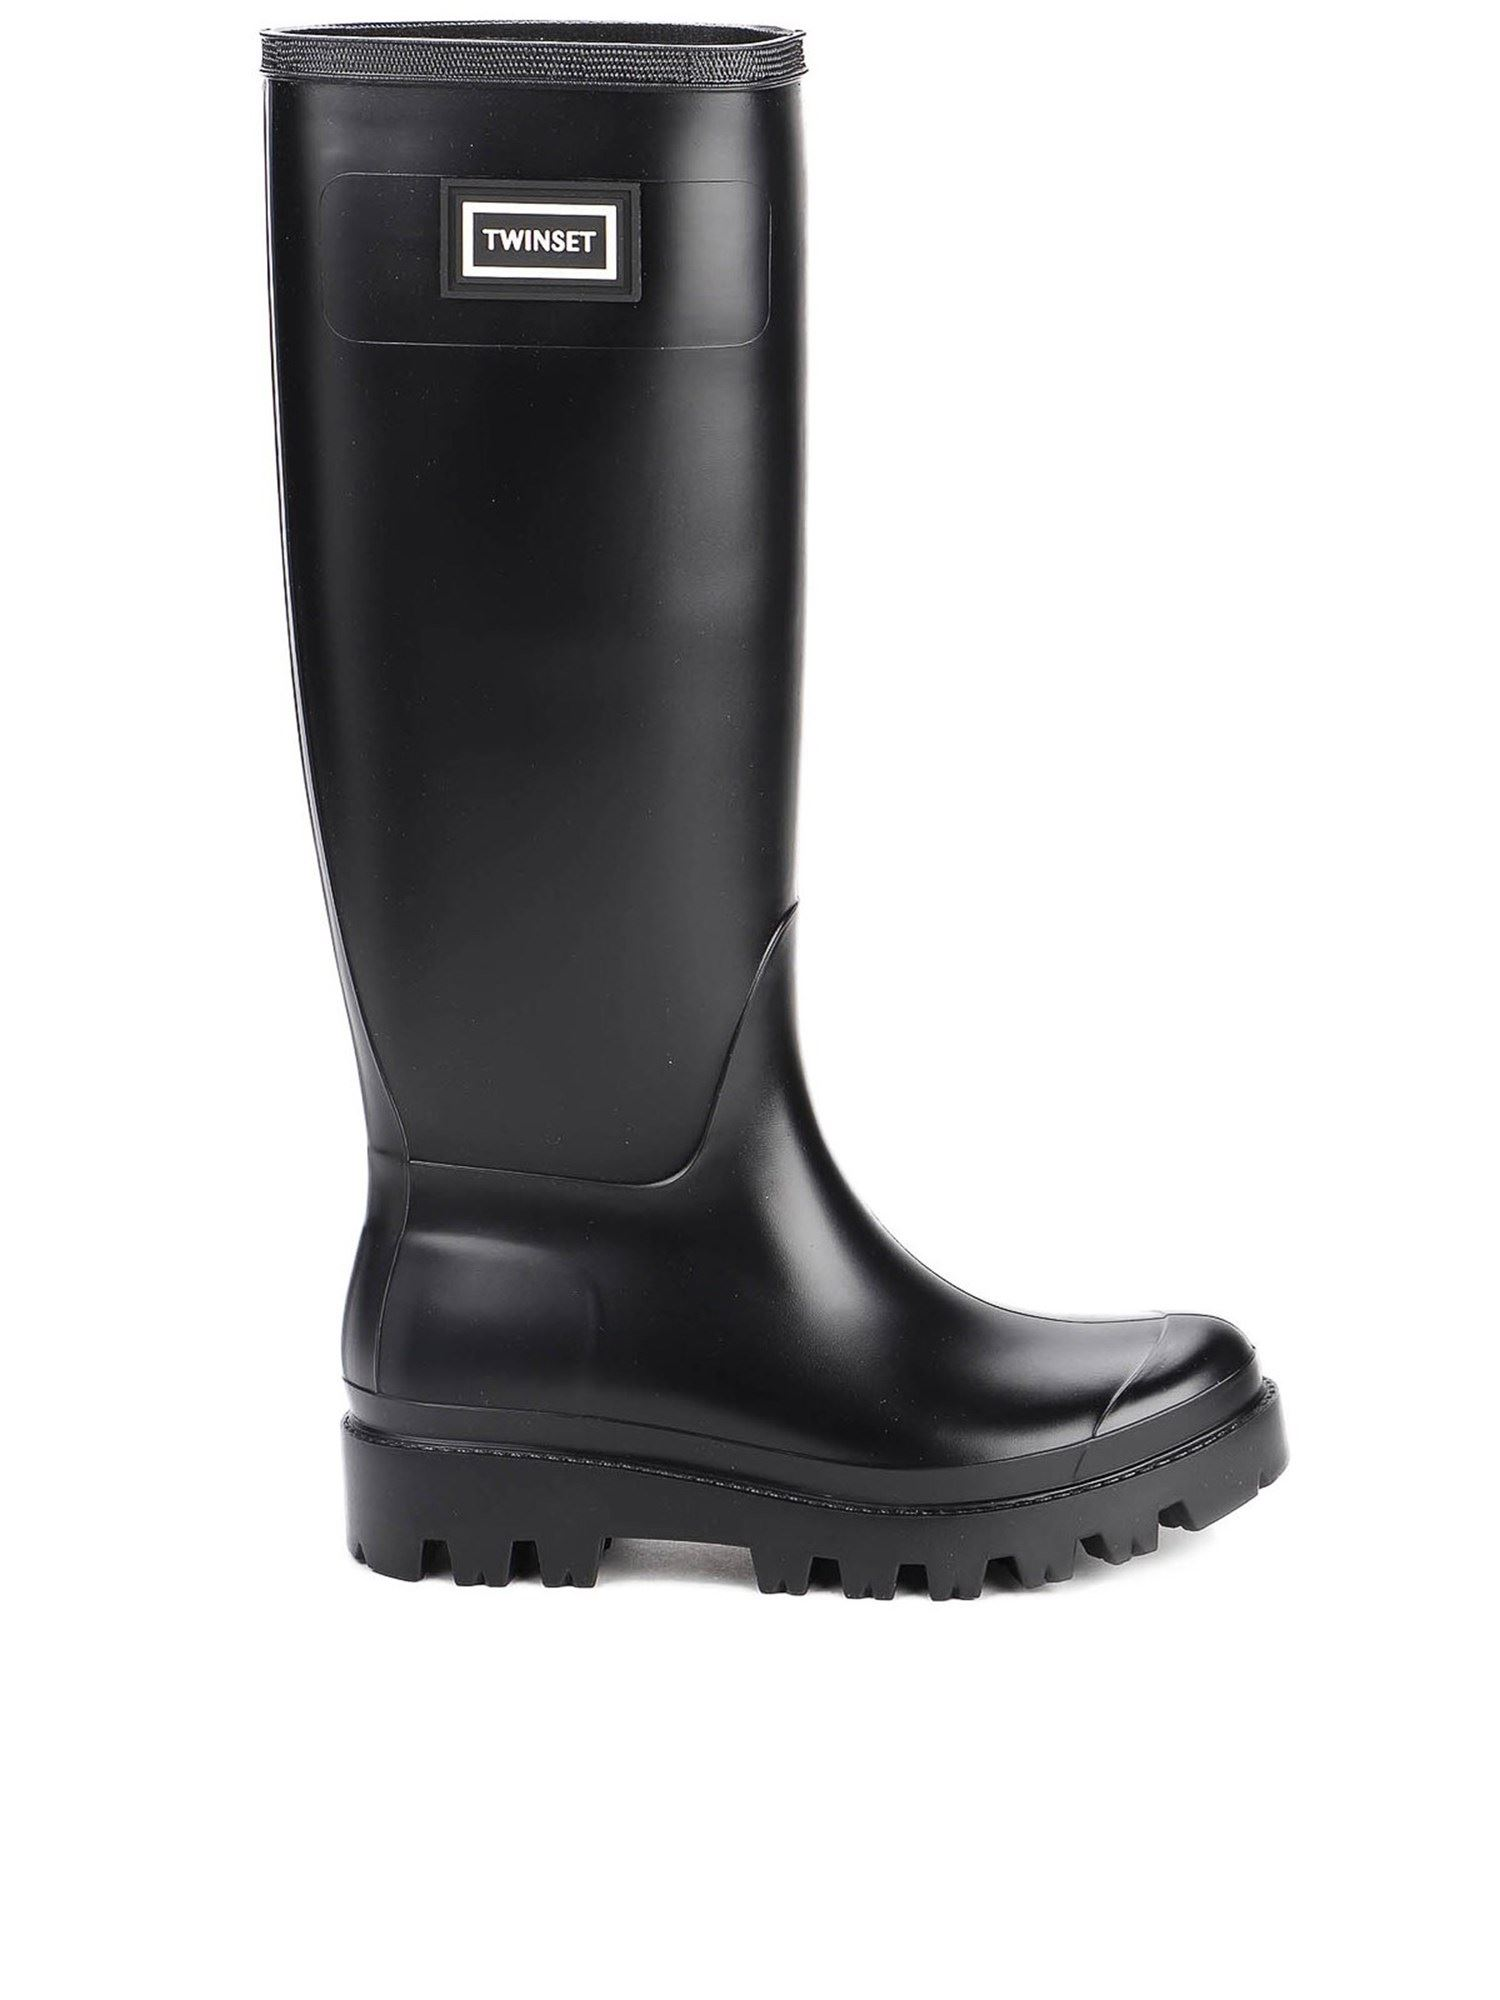 Twinset LOGO PATCH RAIN BOOTS IN BLACK